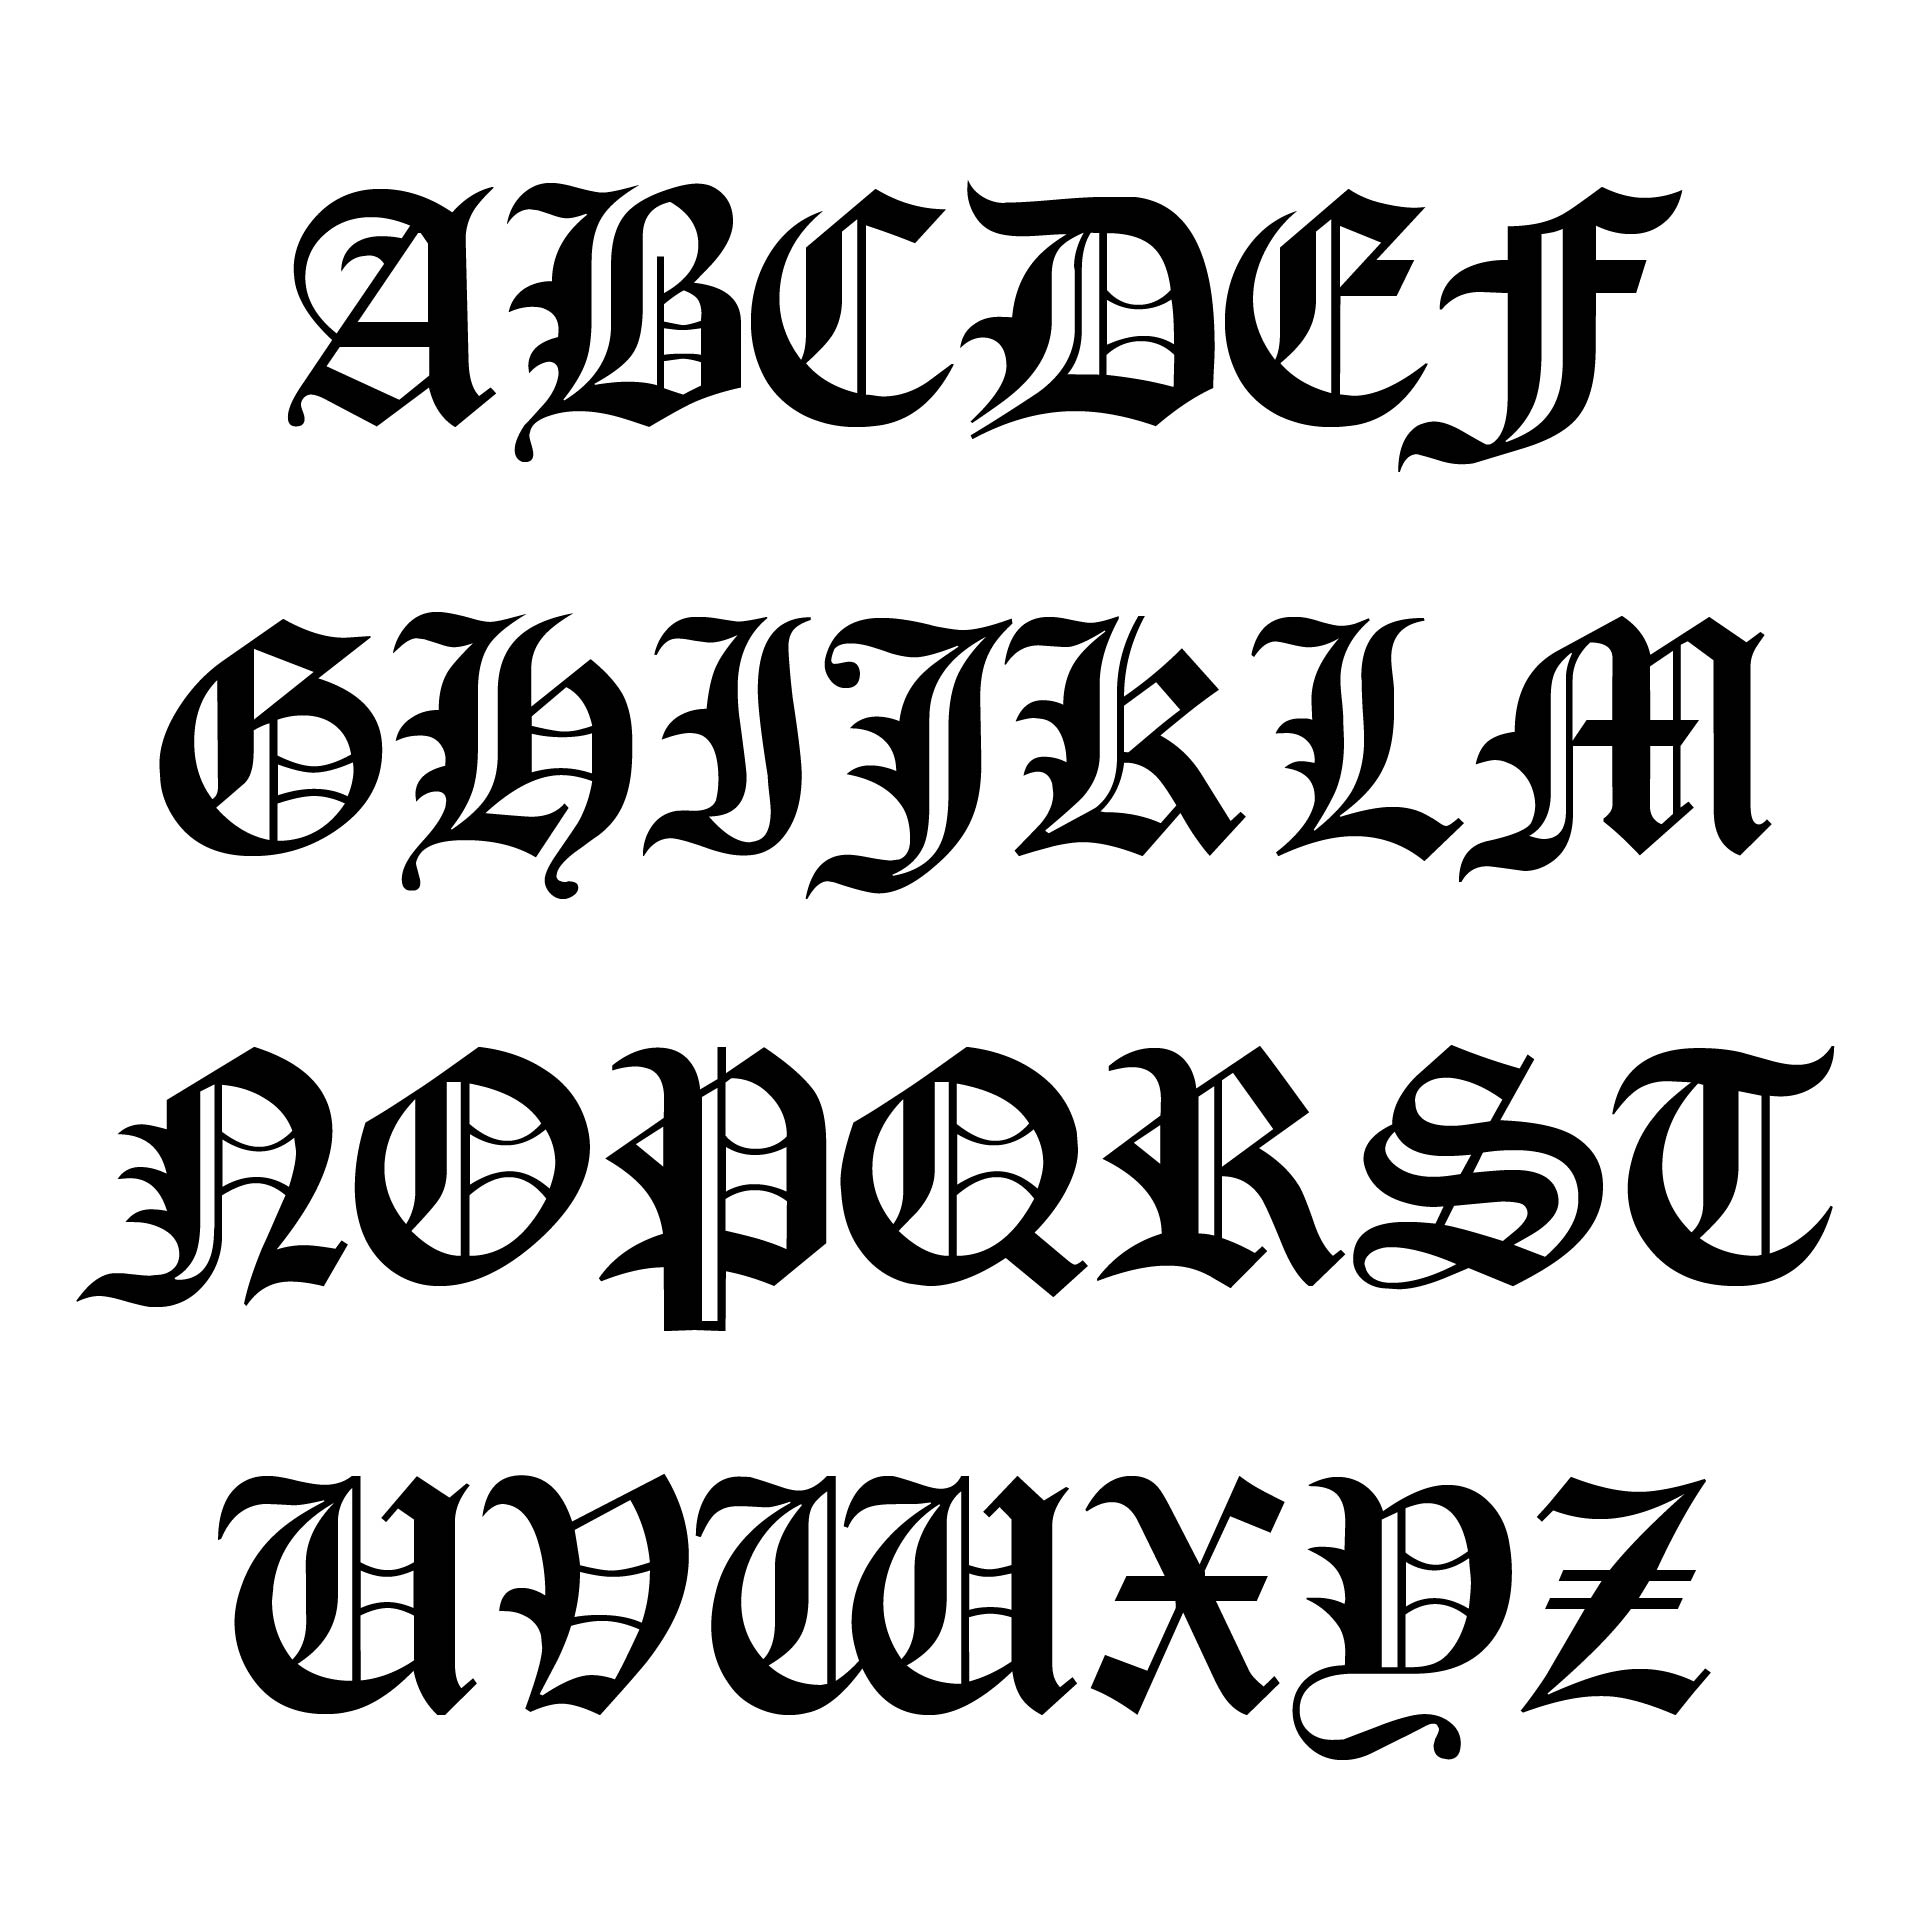 Printable Old English Alphabet A-Z